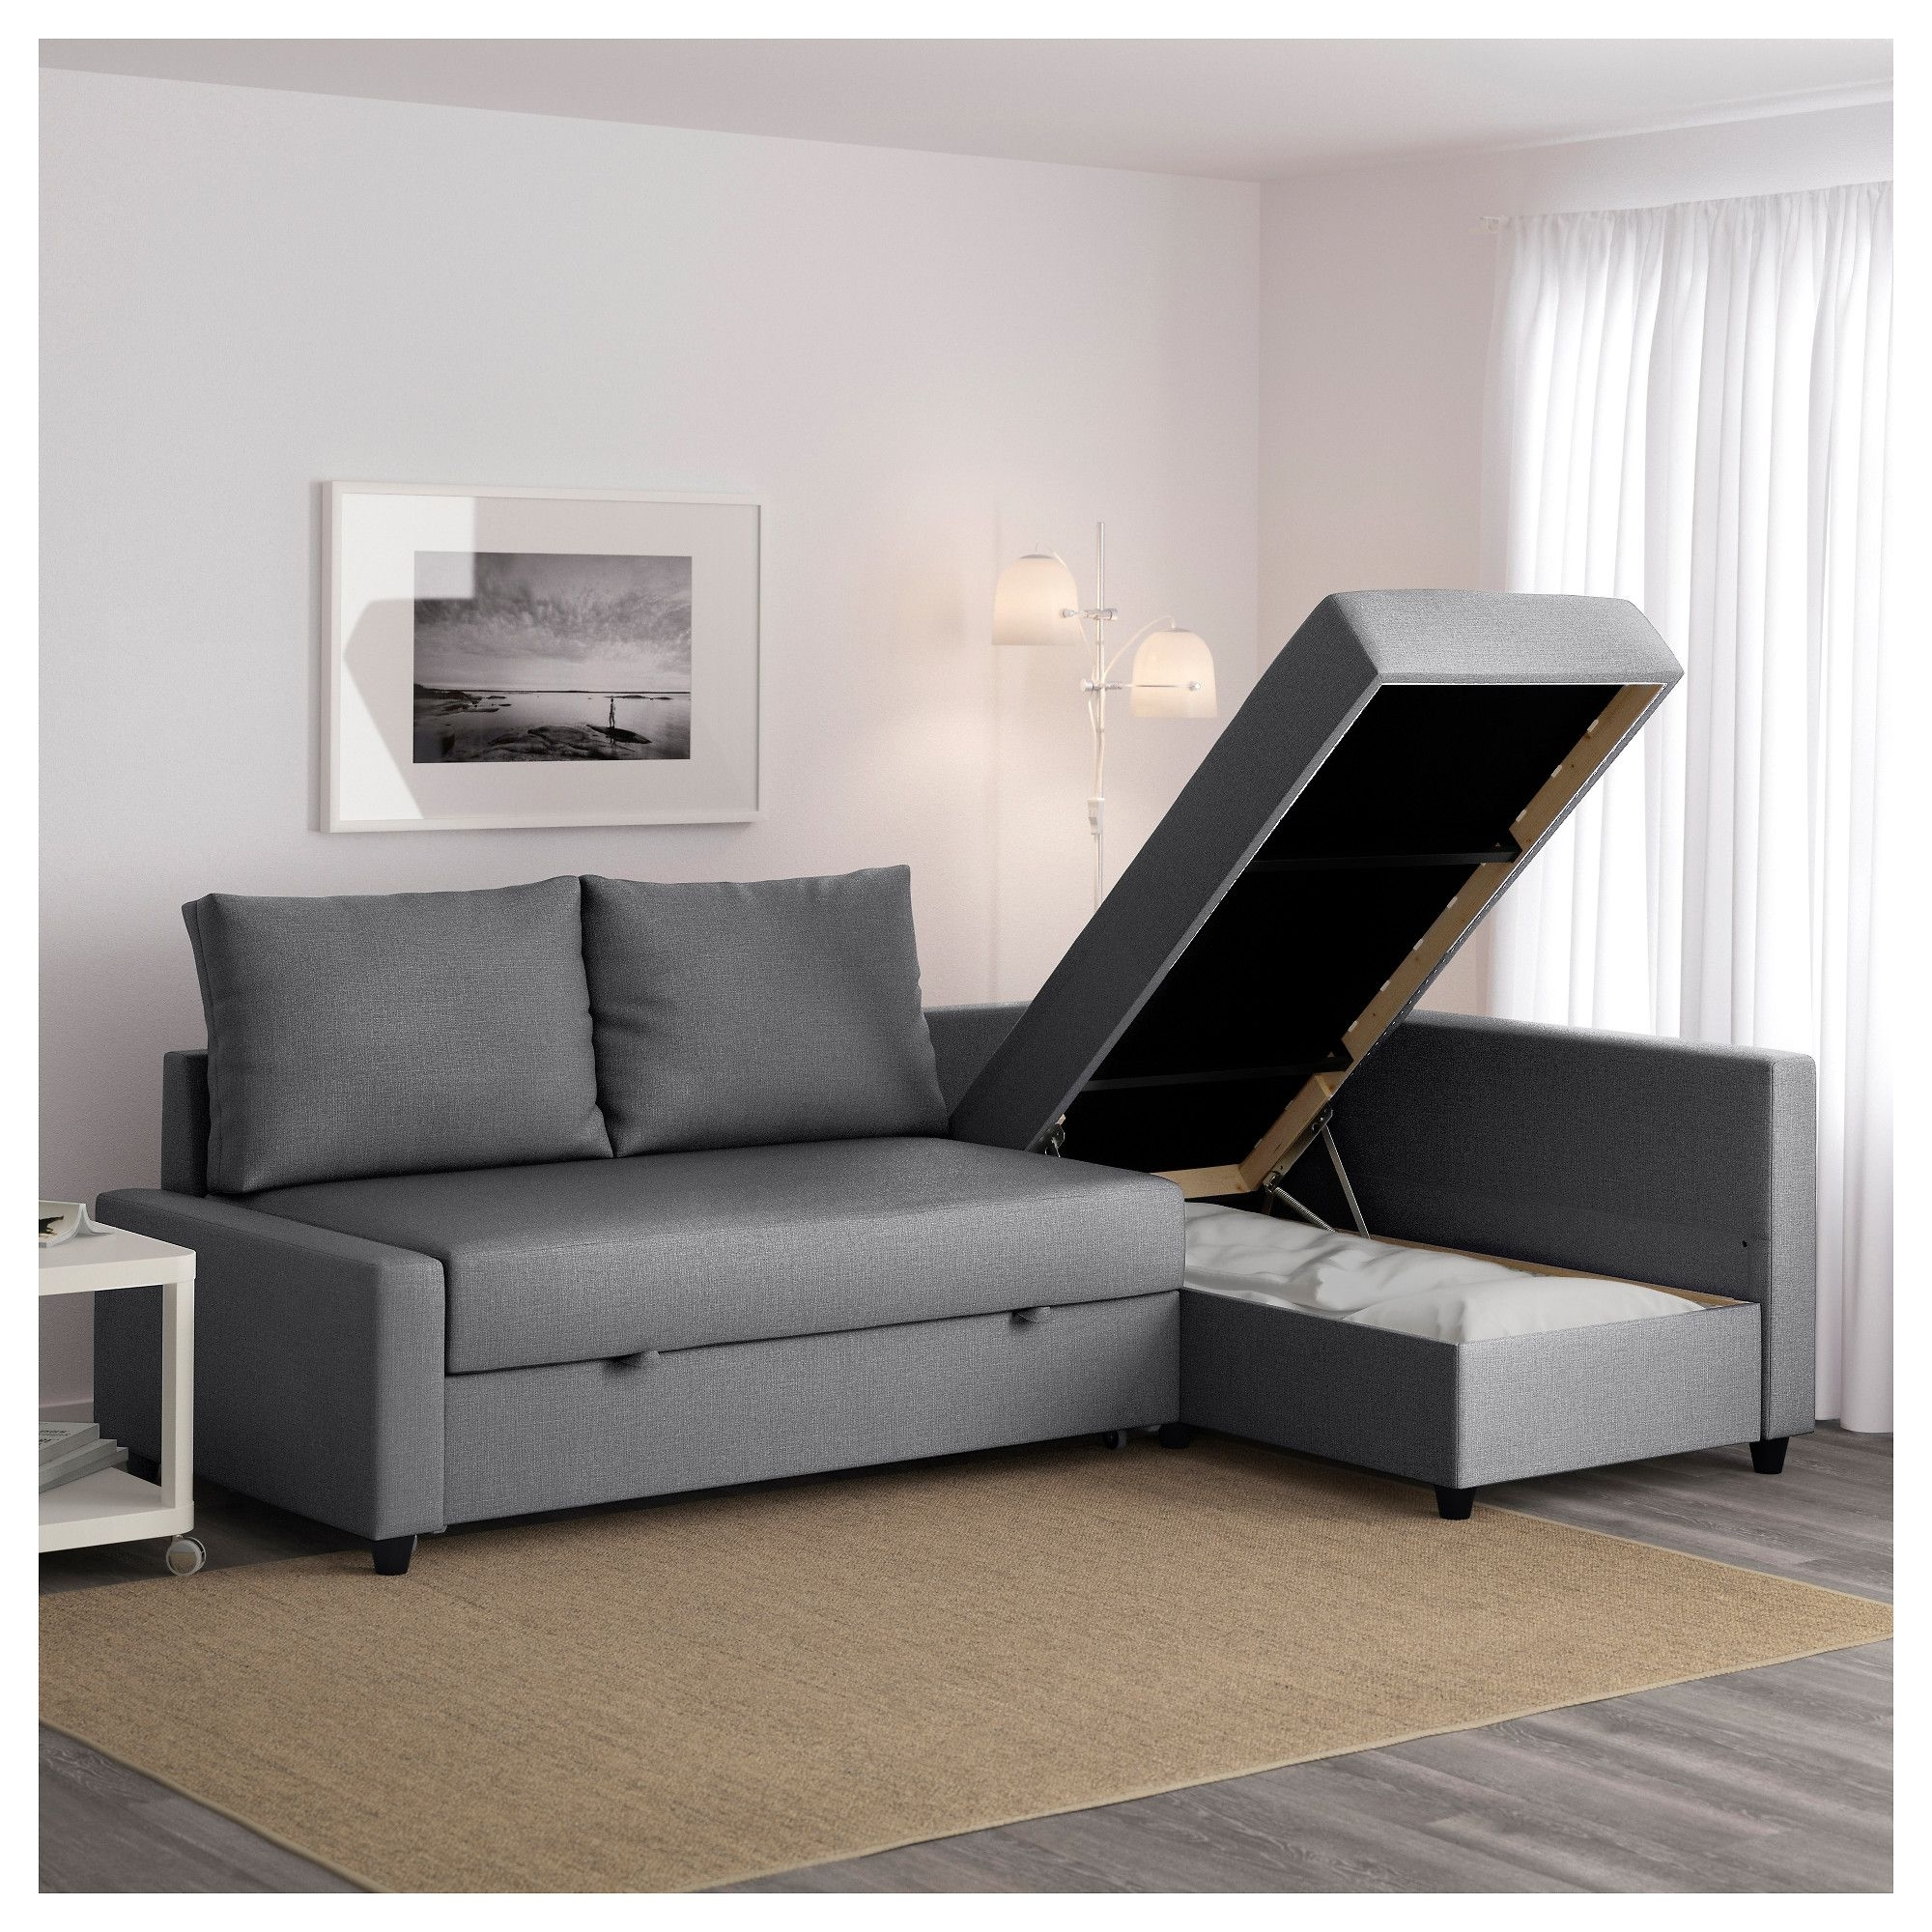 Most Recent Ikea Corner Sofas With Storage In Friheten Corner Sofa Bed With Storage Skiftebo Dark Grey (View 10 of 15)